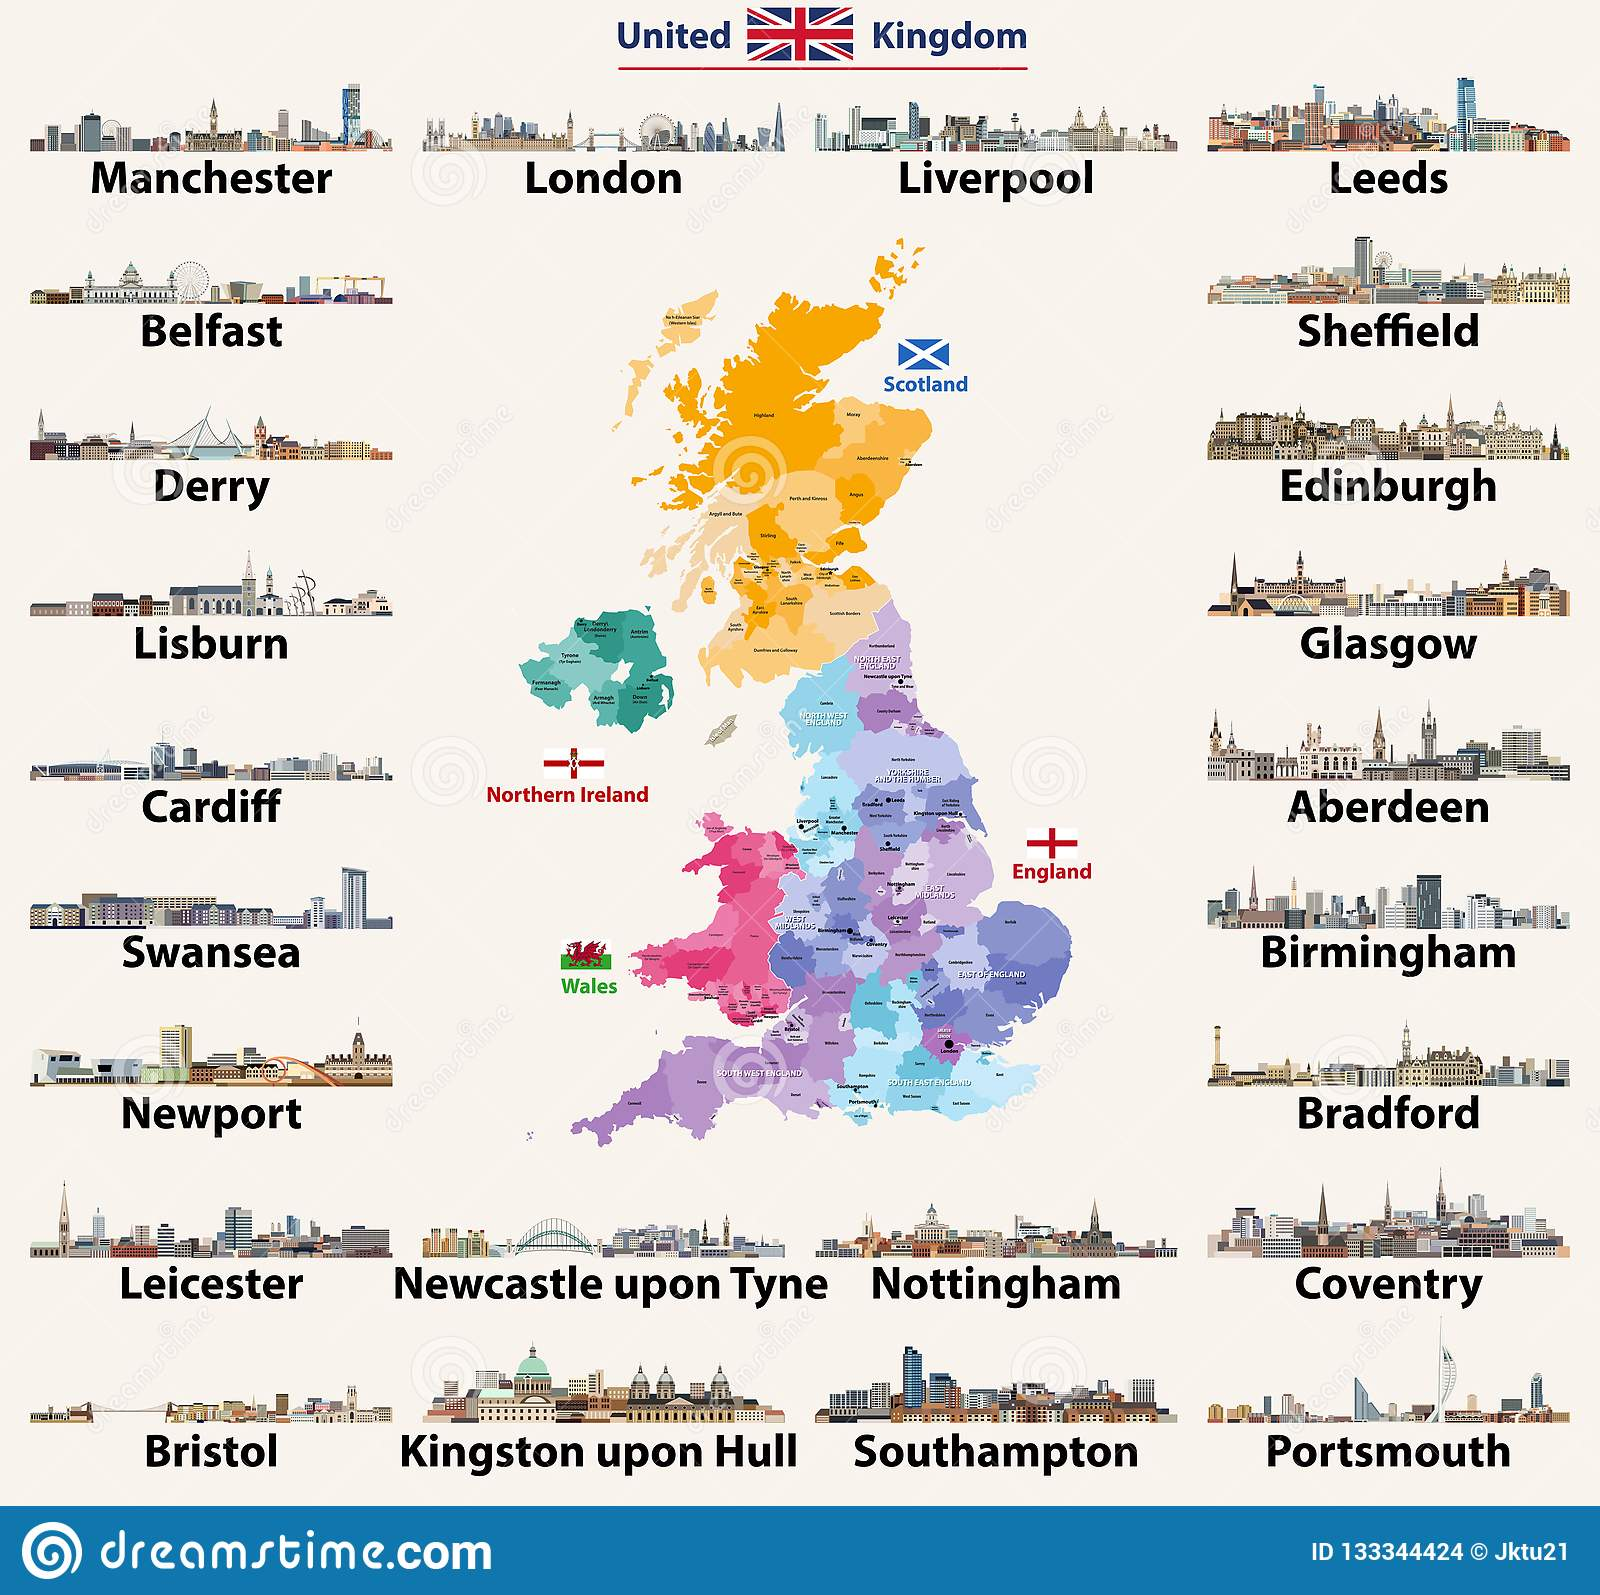 Map Of Northern Ireland Cities.United Kingdom Cities Skylines Detailed Map Of United Kingdom With